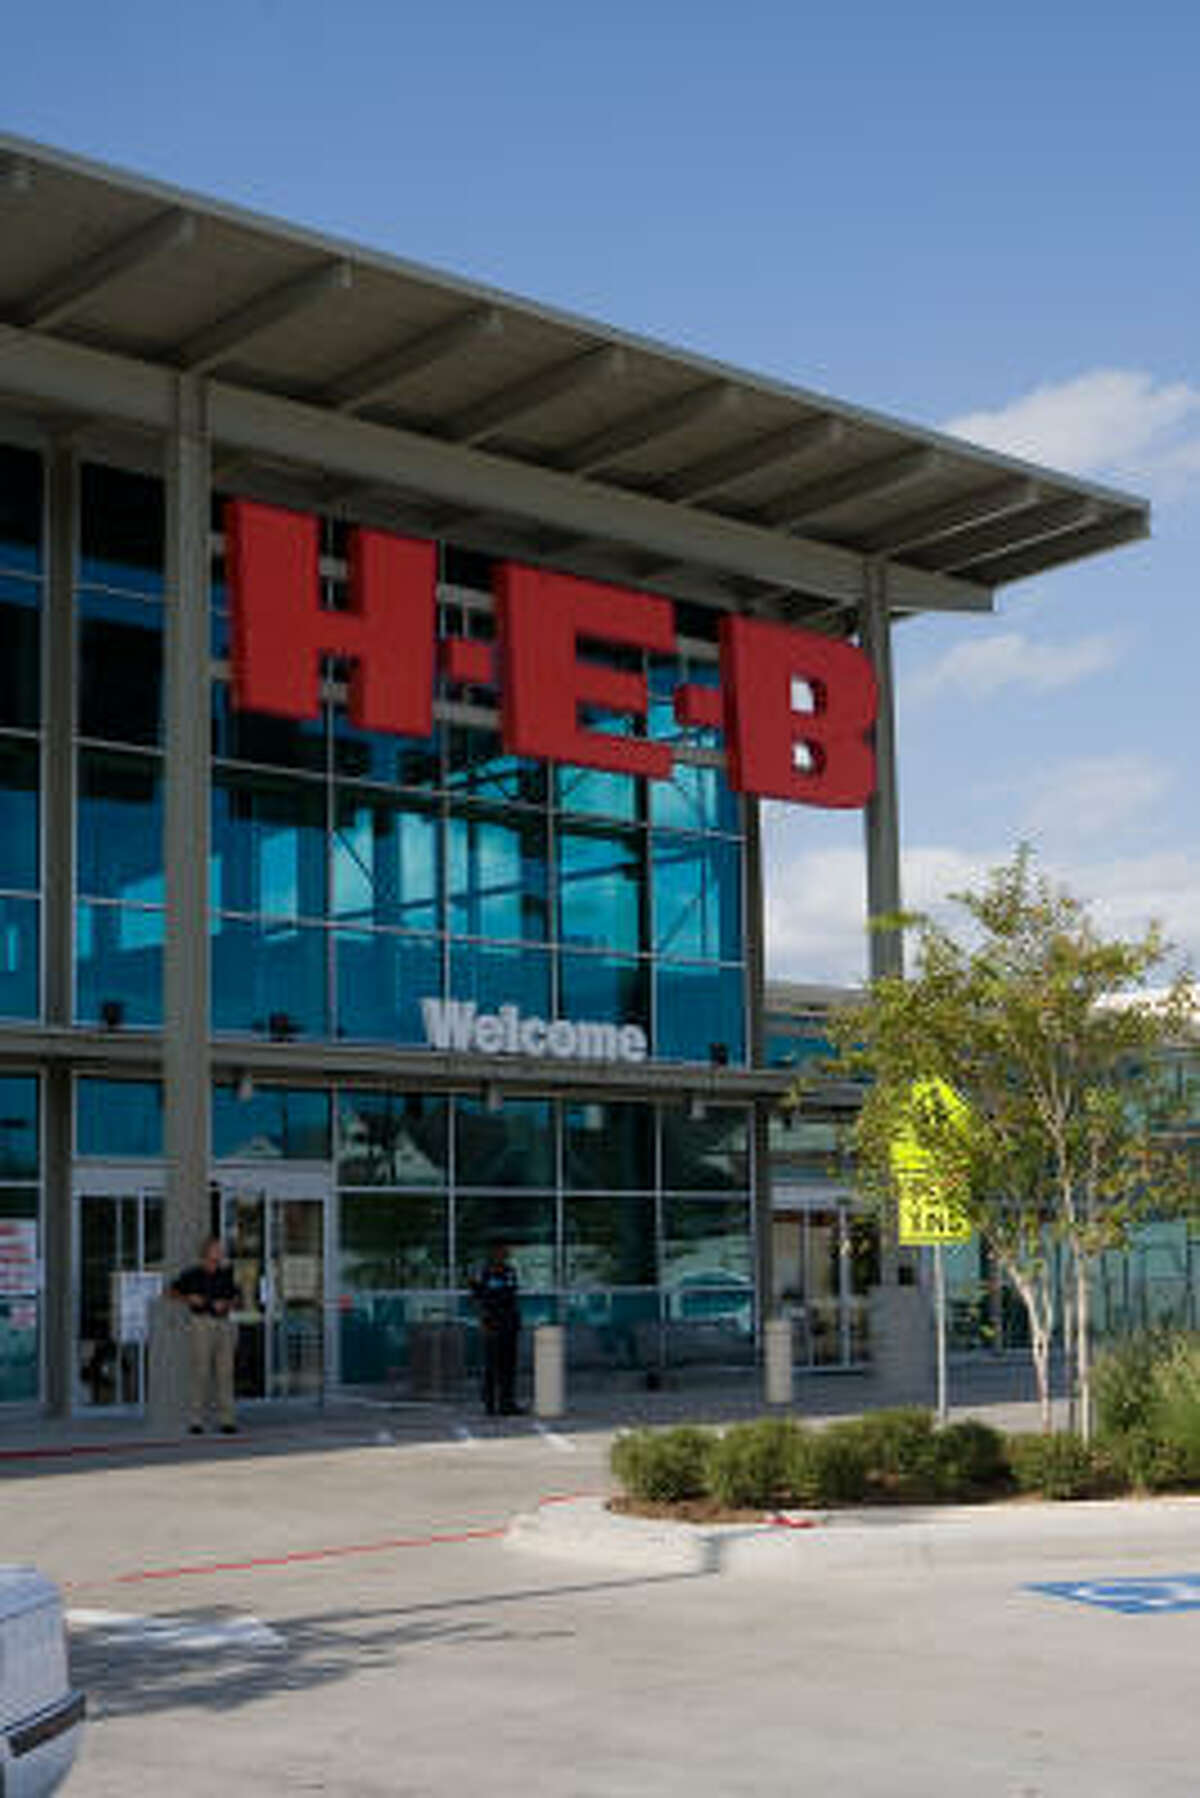 NEW H-E-B: The entrance to the new H-E-B Buffalo Market, which is located at Buffalo Speedway and Bissonnet.